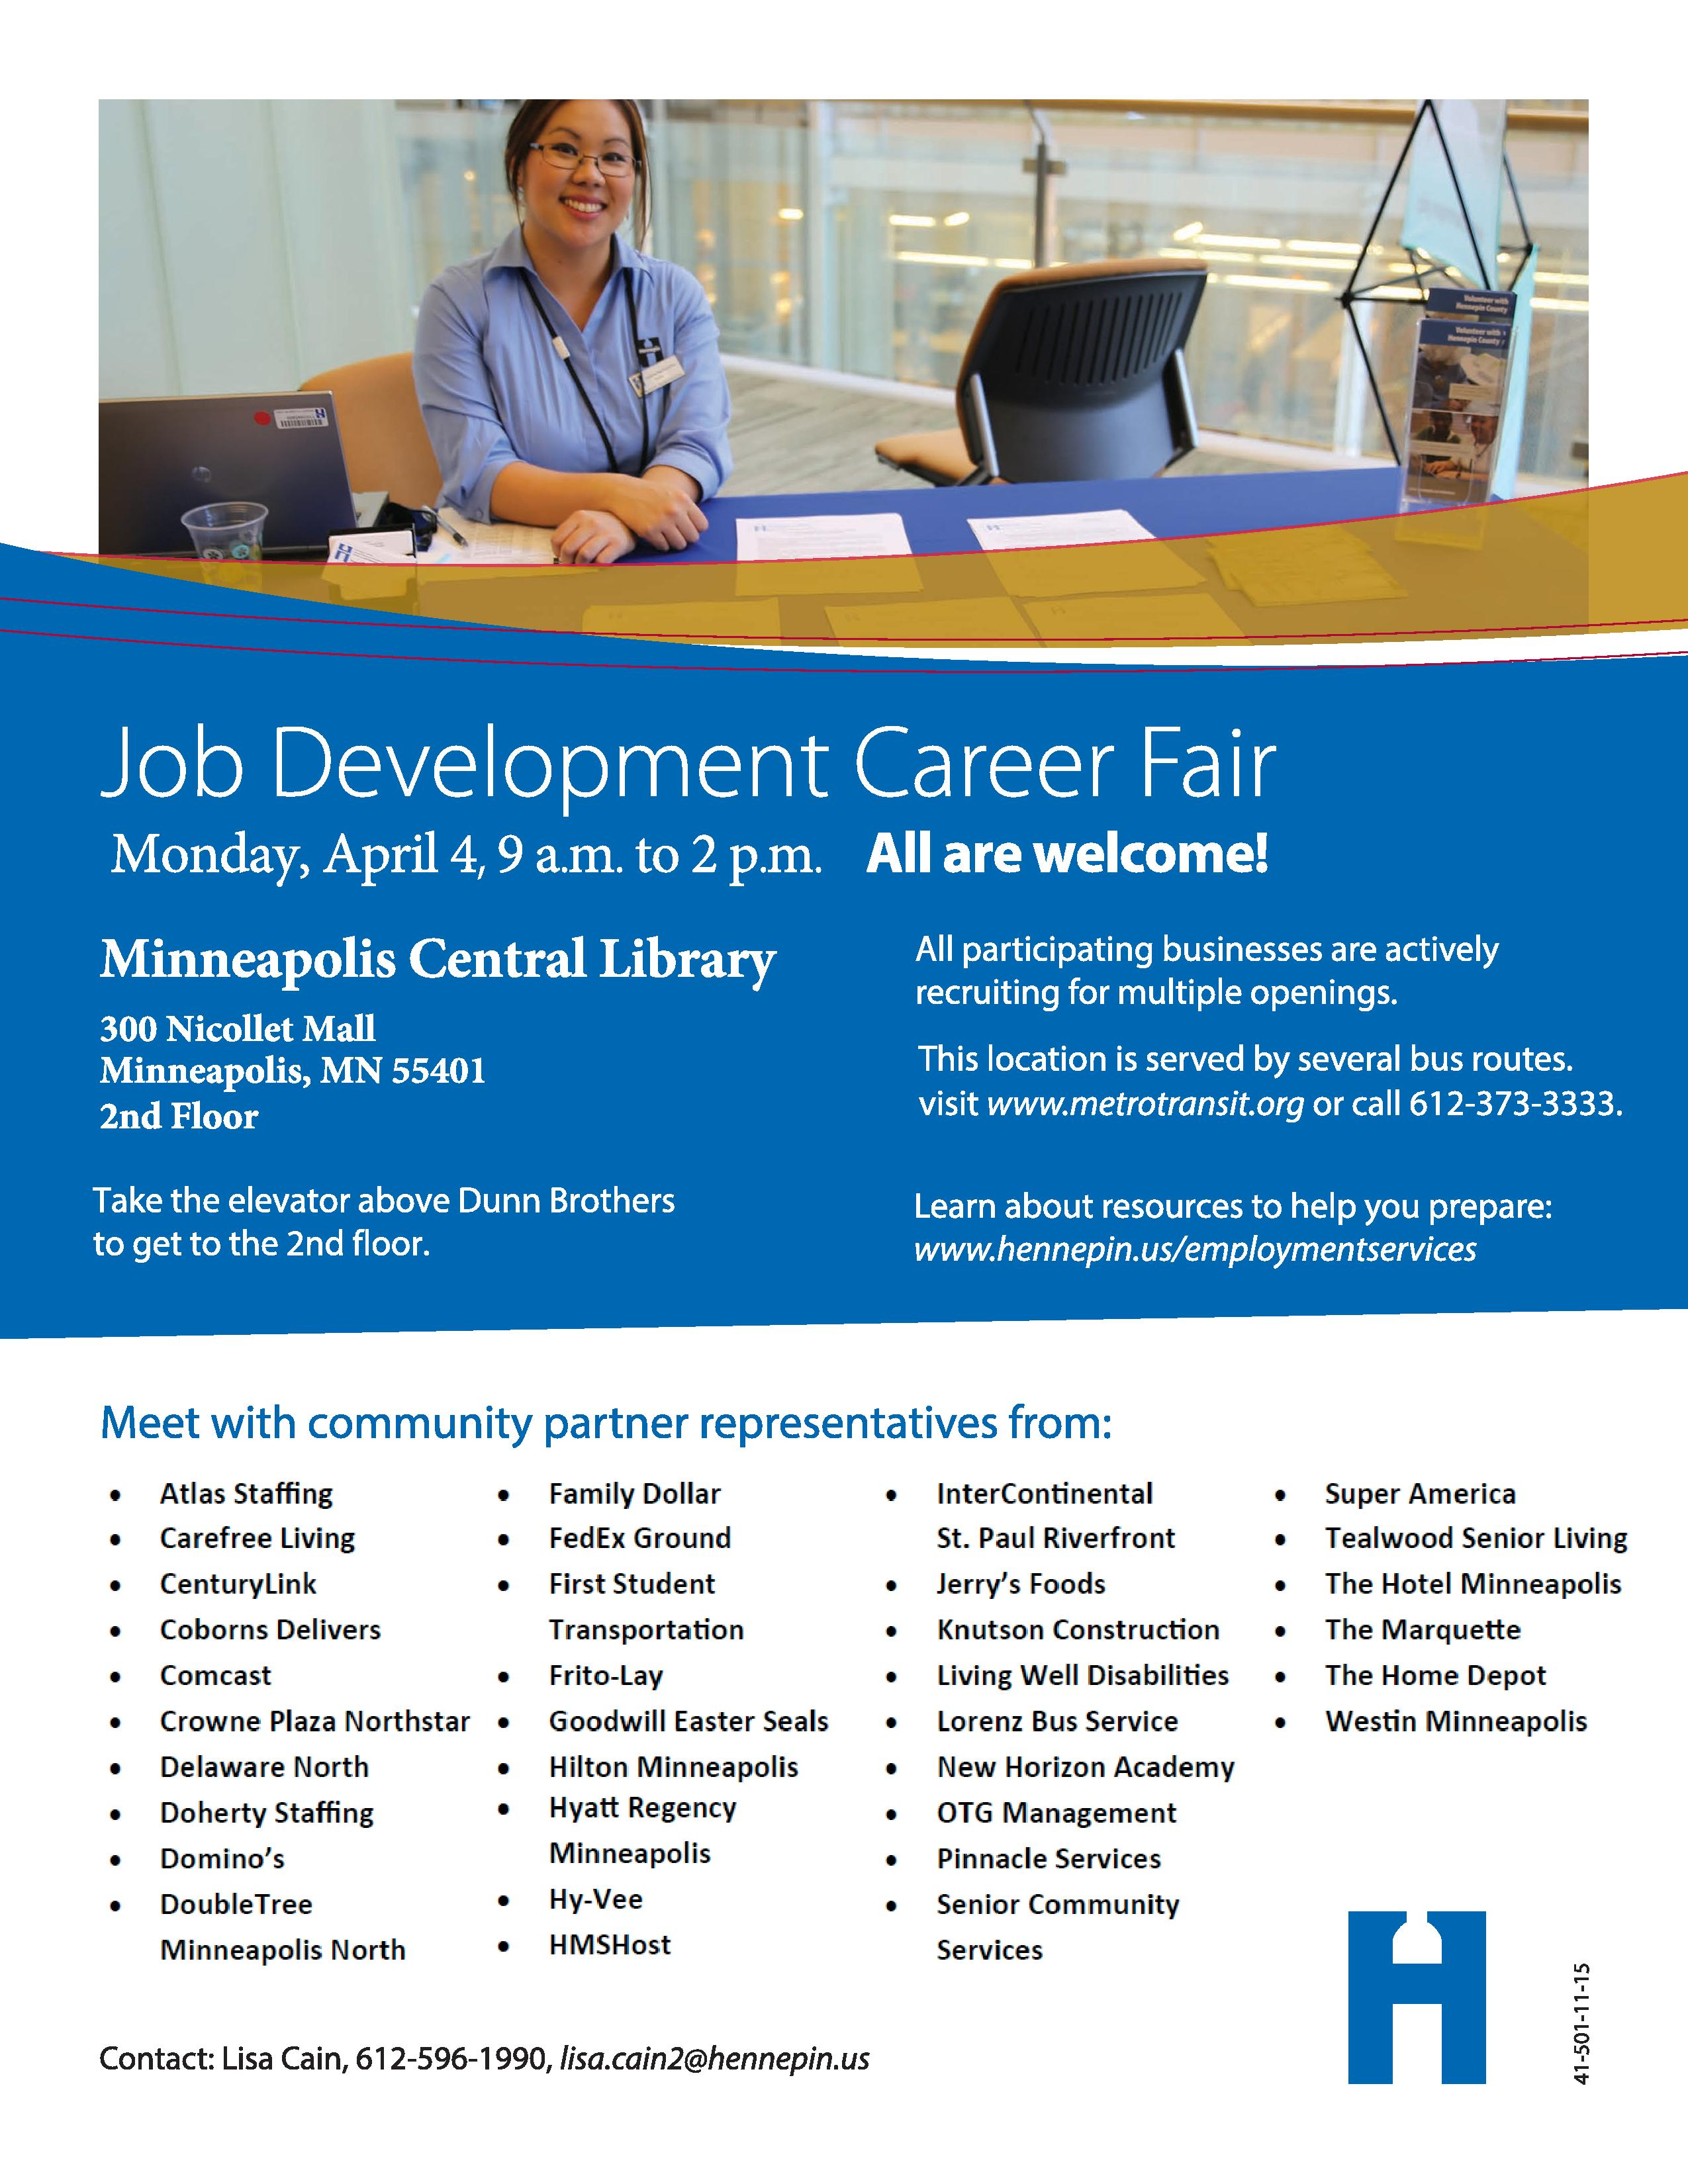 job-development-career-fair-flyer-april-4-2016-page-001_(1).jpg